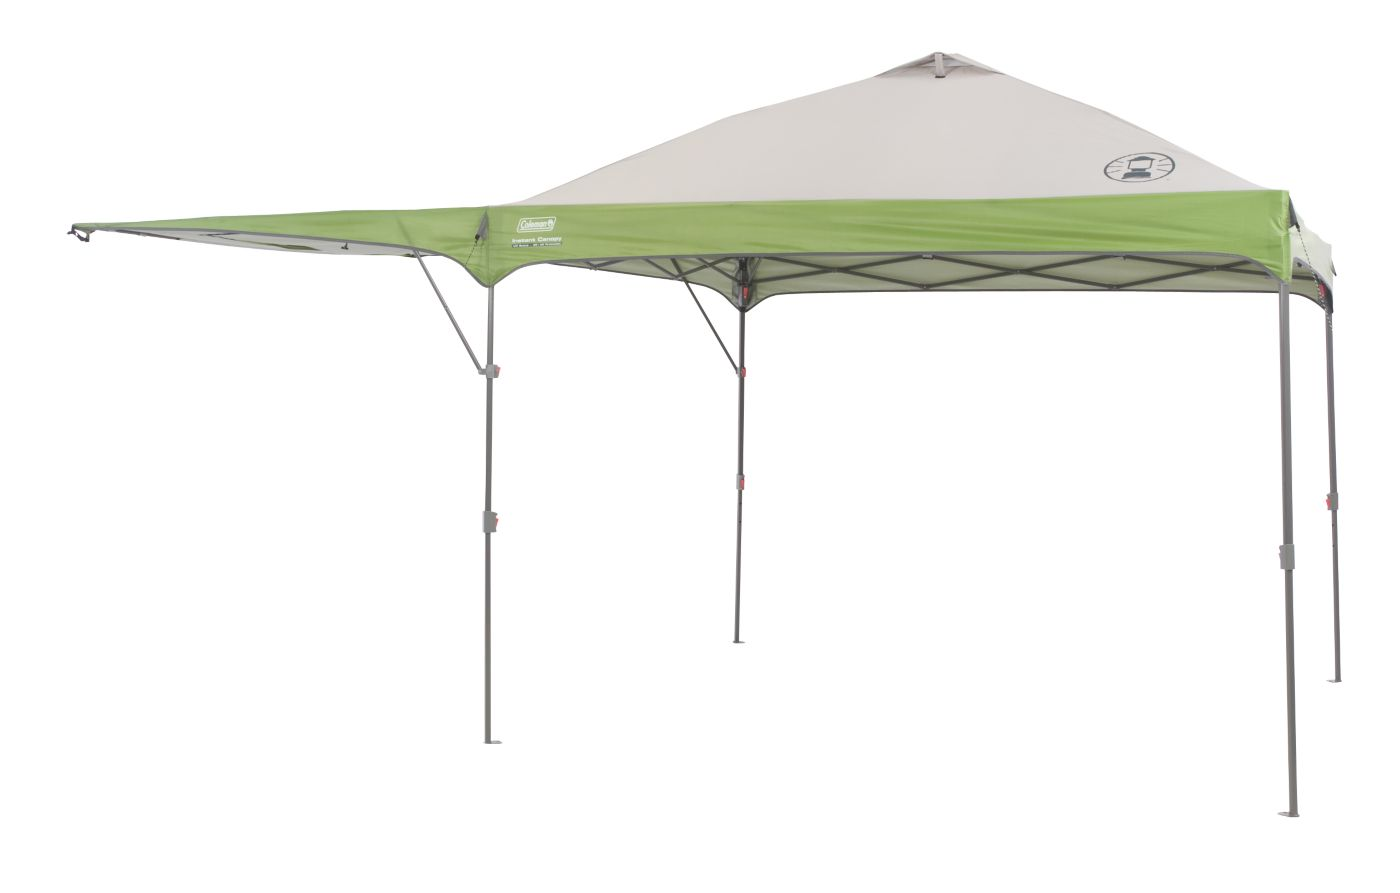 Swingwall Instant Canopy image 1 ...  sc 1 st  Coleman & 10 ft. x 10 ft. Swingwall Instant Canopy | Coleman